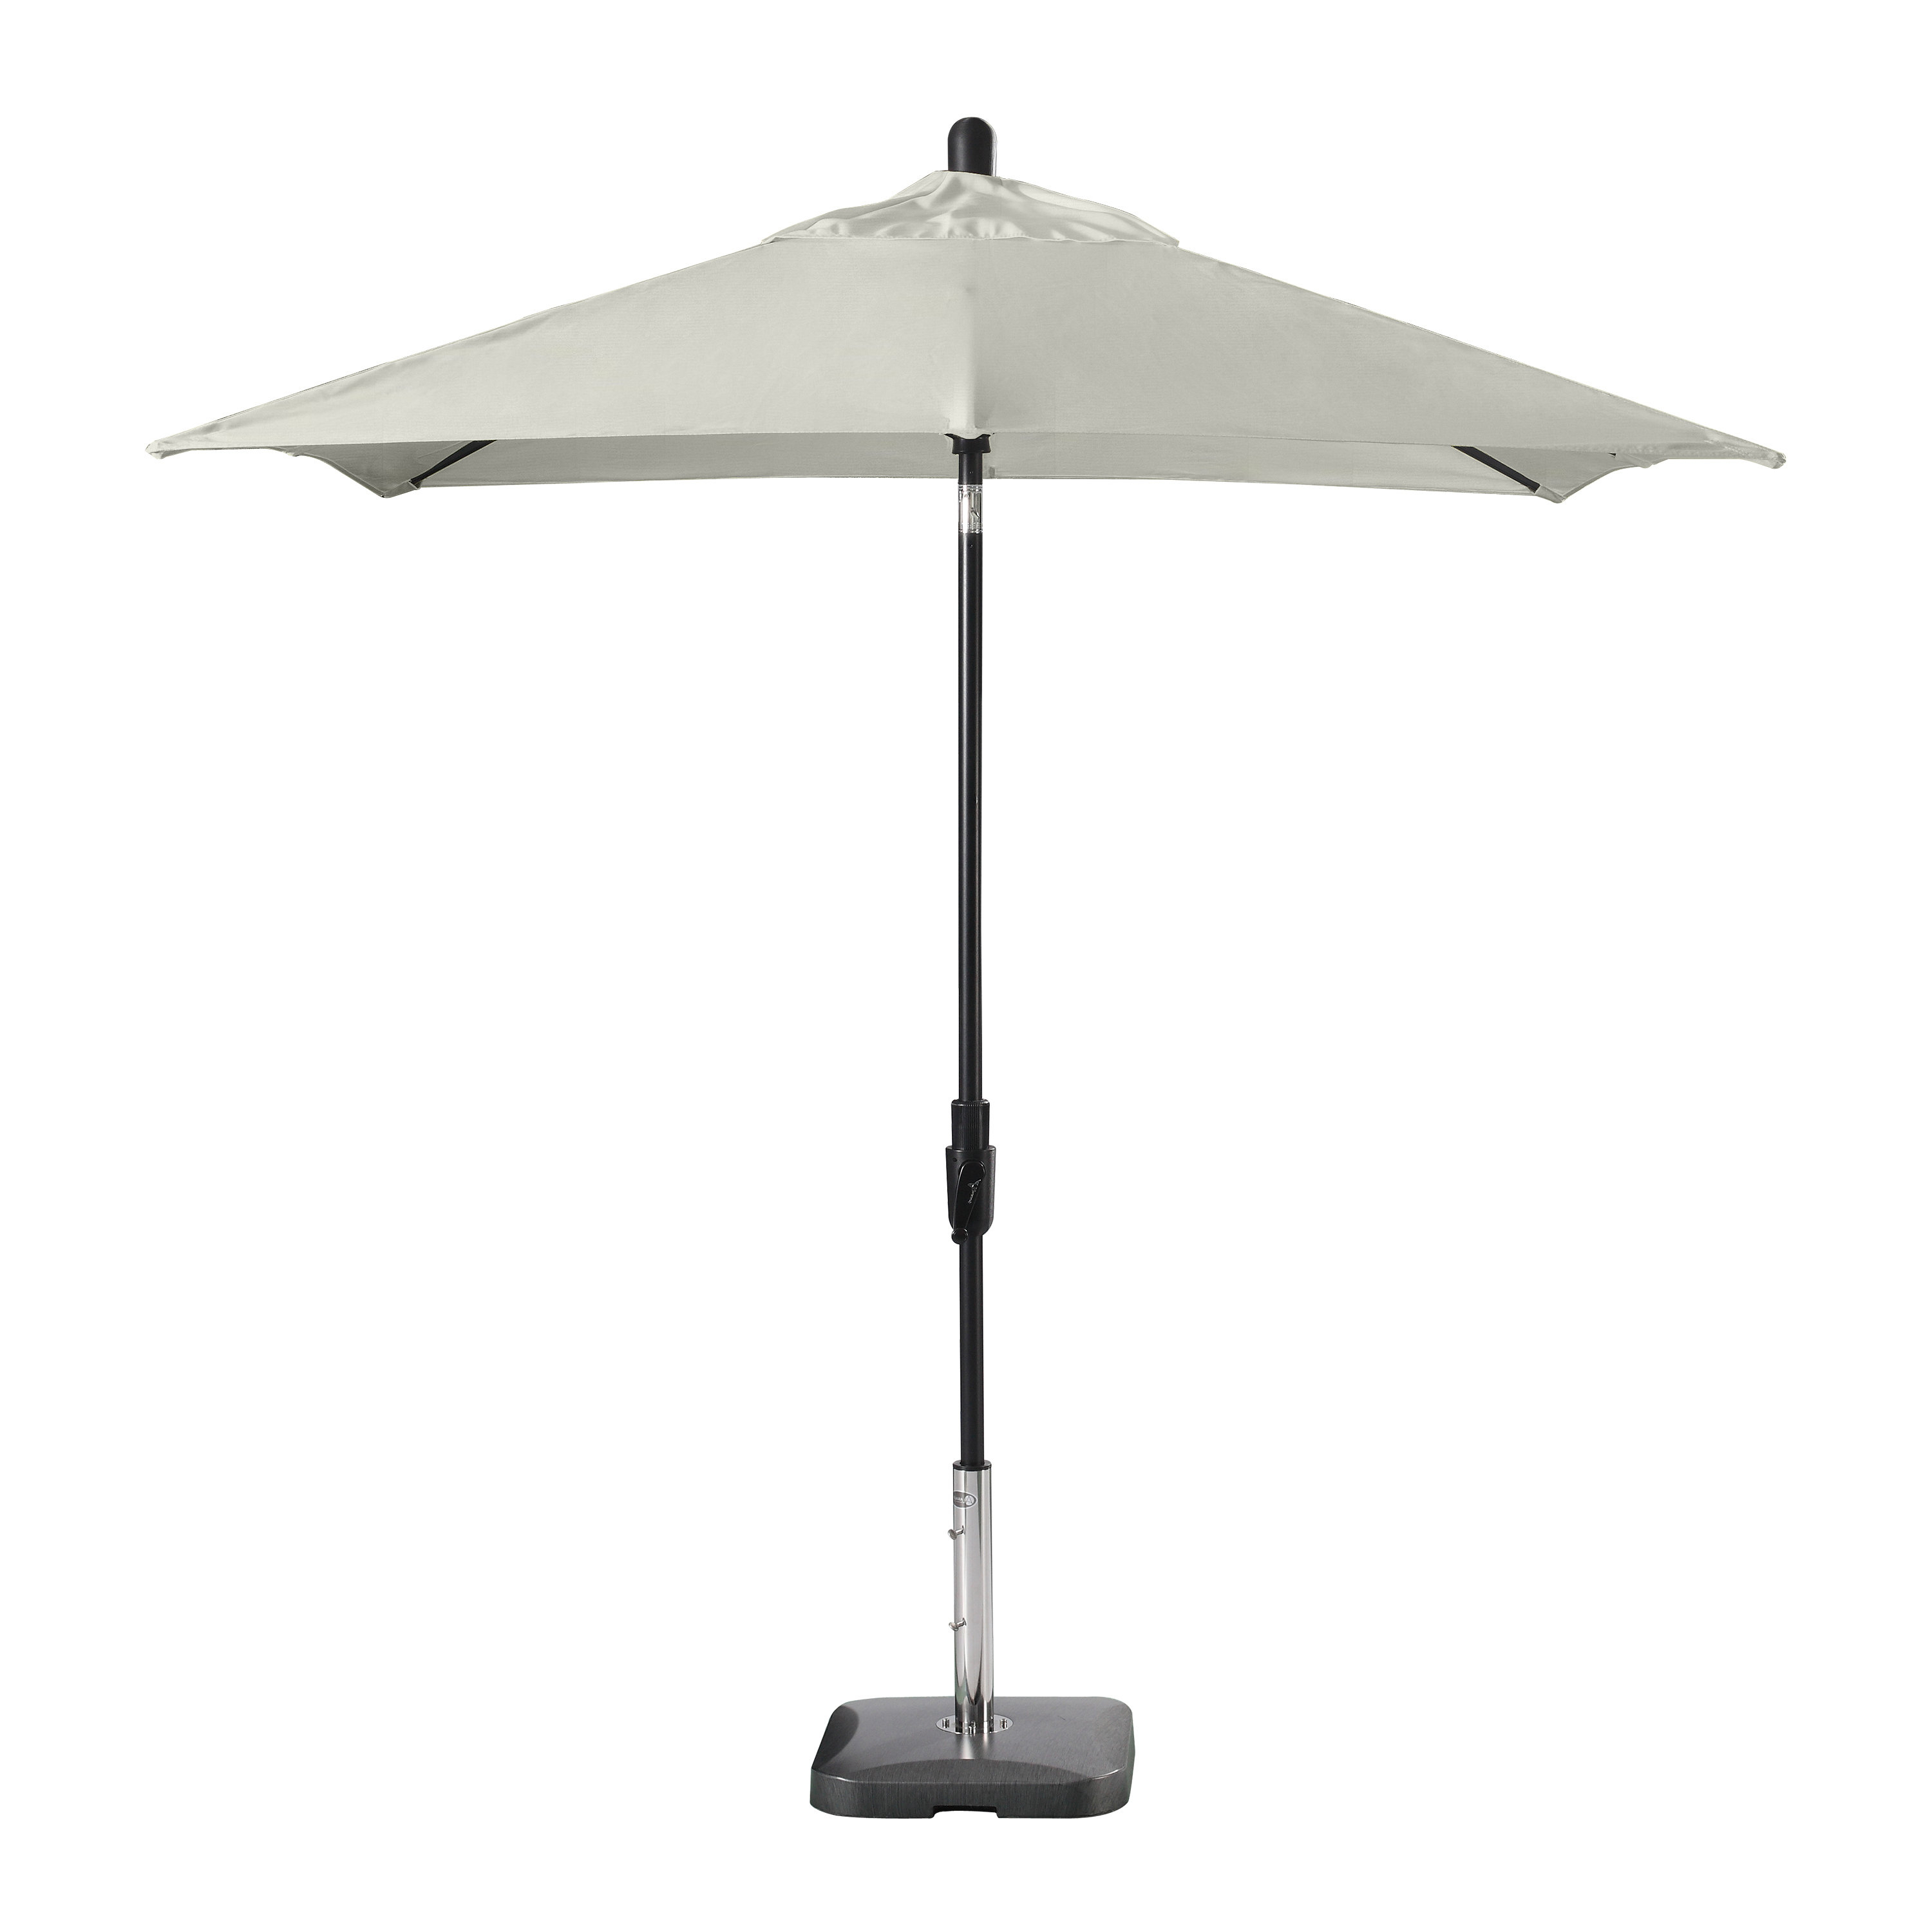 Featured Photo of Wiebe Auto Tilt Square Market Sunbrella Umbrellas